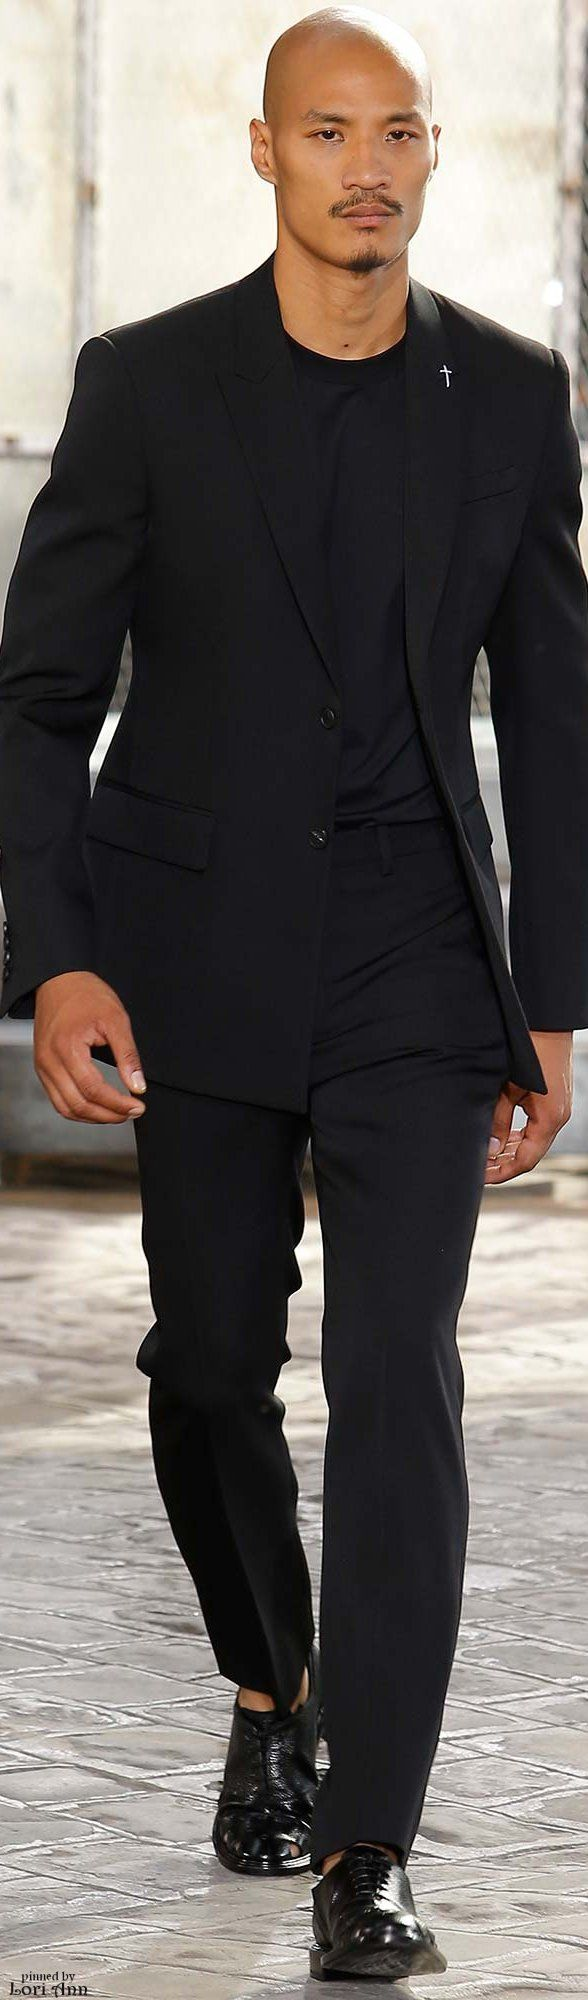 Givenchy Spring 2016 Black Suit Black On Black Men 39 S